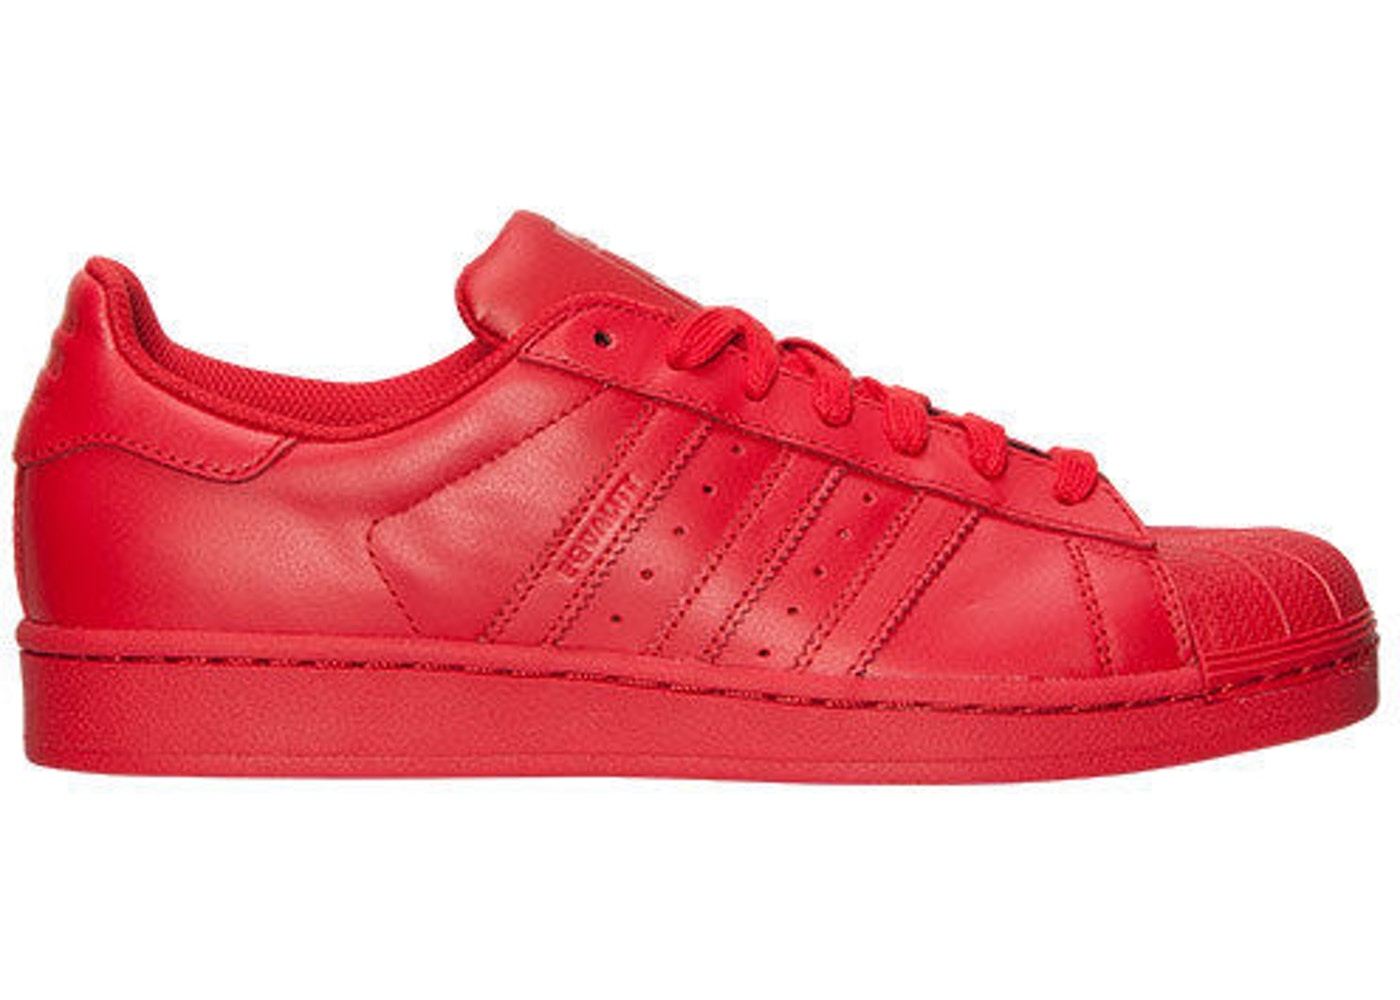 49c948c4 adidas Superstar Color Pack Red - S41833